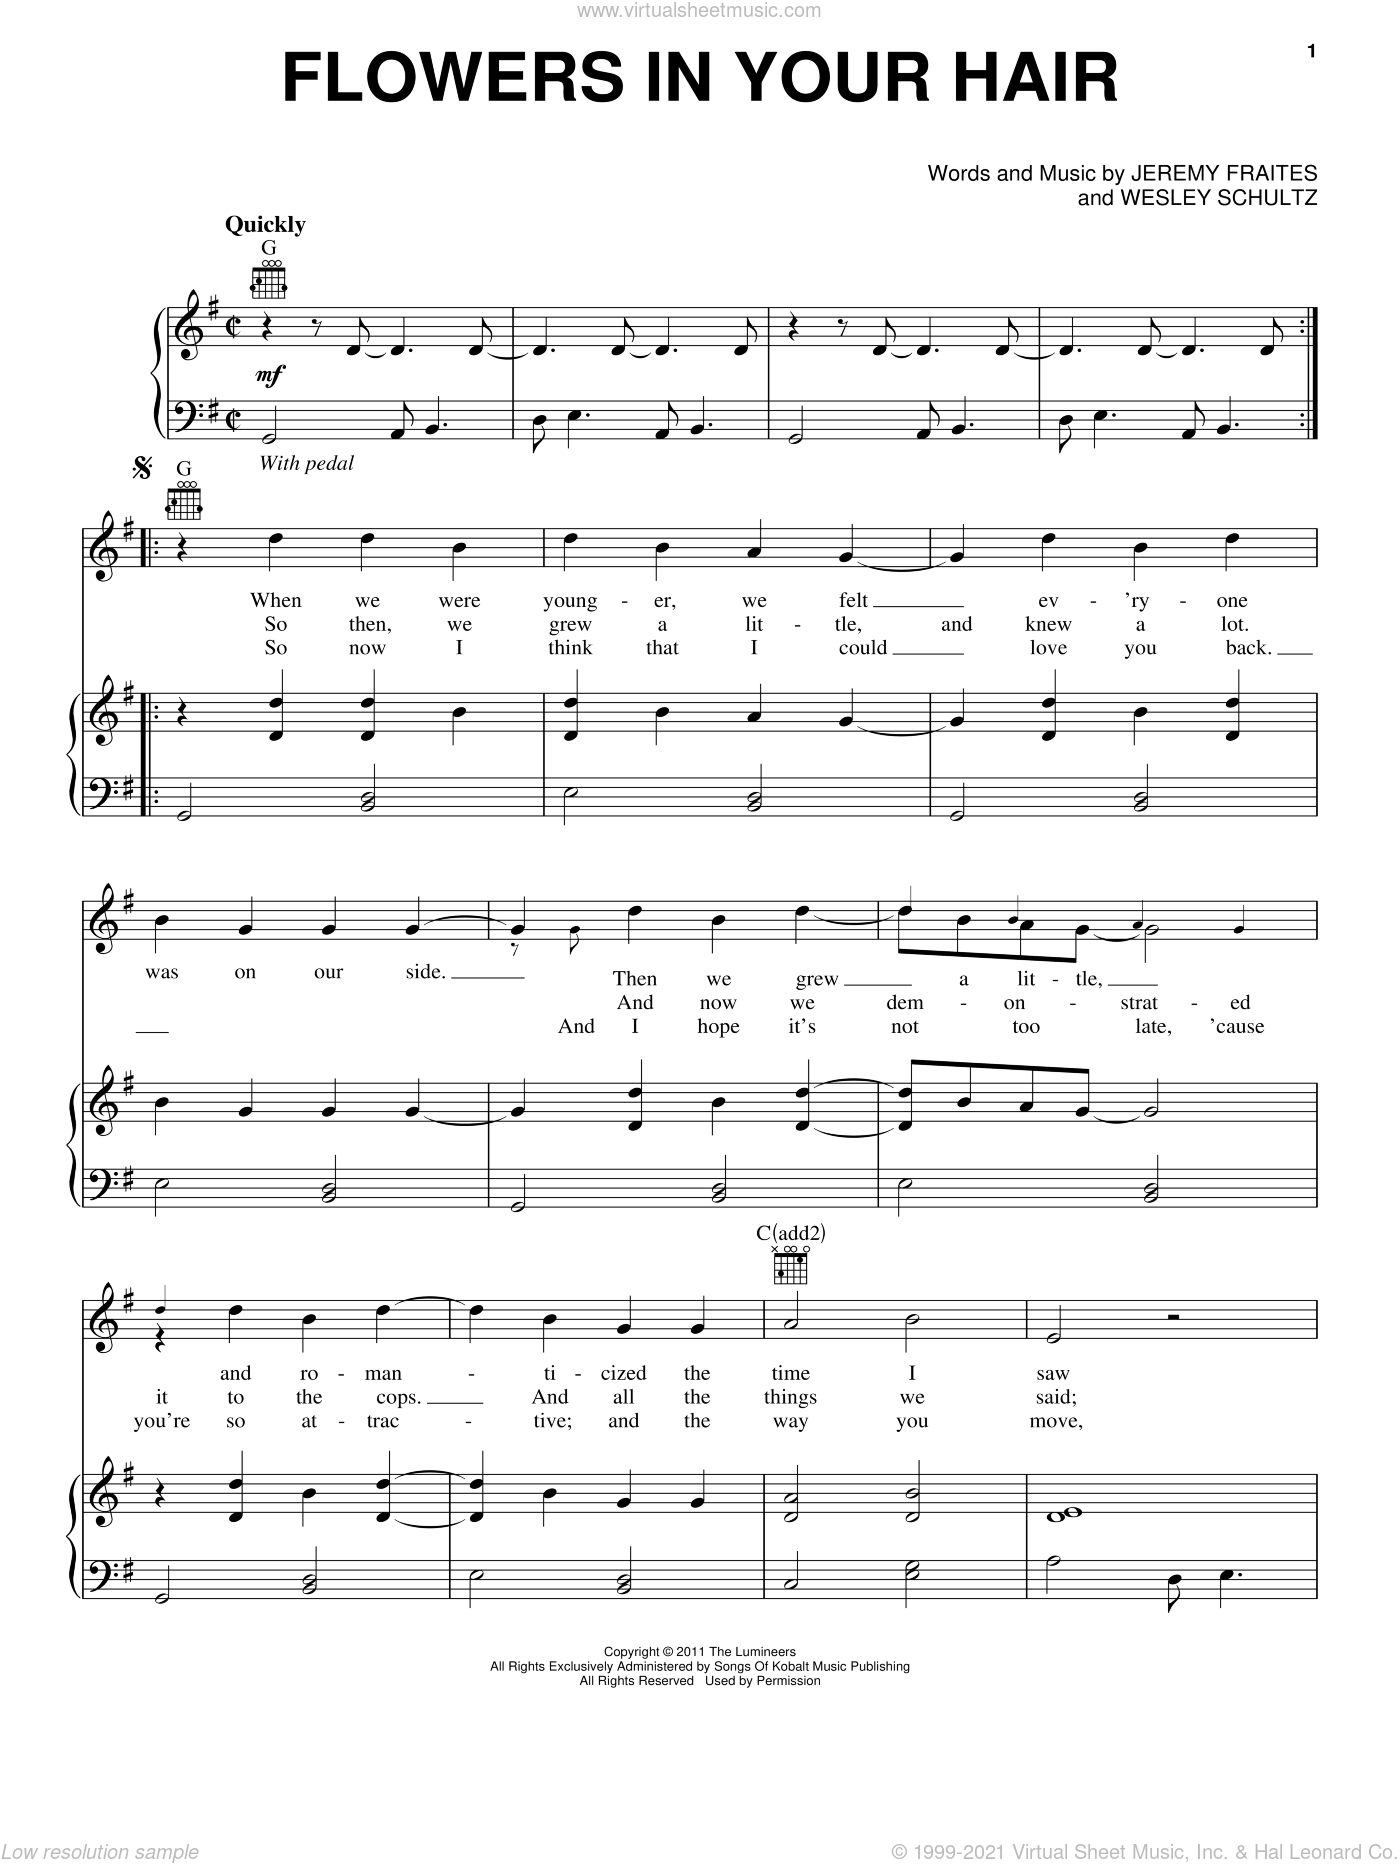 Flowers In Your Hair sheet music for voice, piano or guitar by The Lumineers, Jeremy Fraites and Wesley Schultz, intermediate. Score Image Preview.